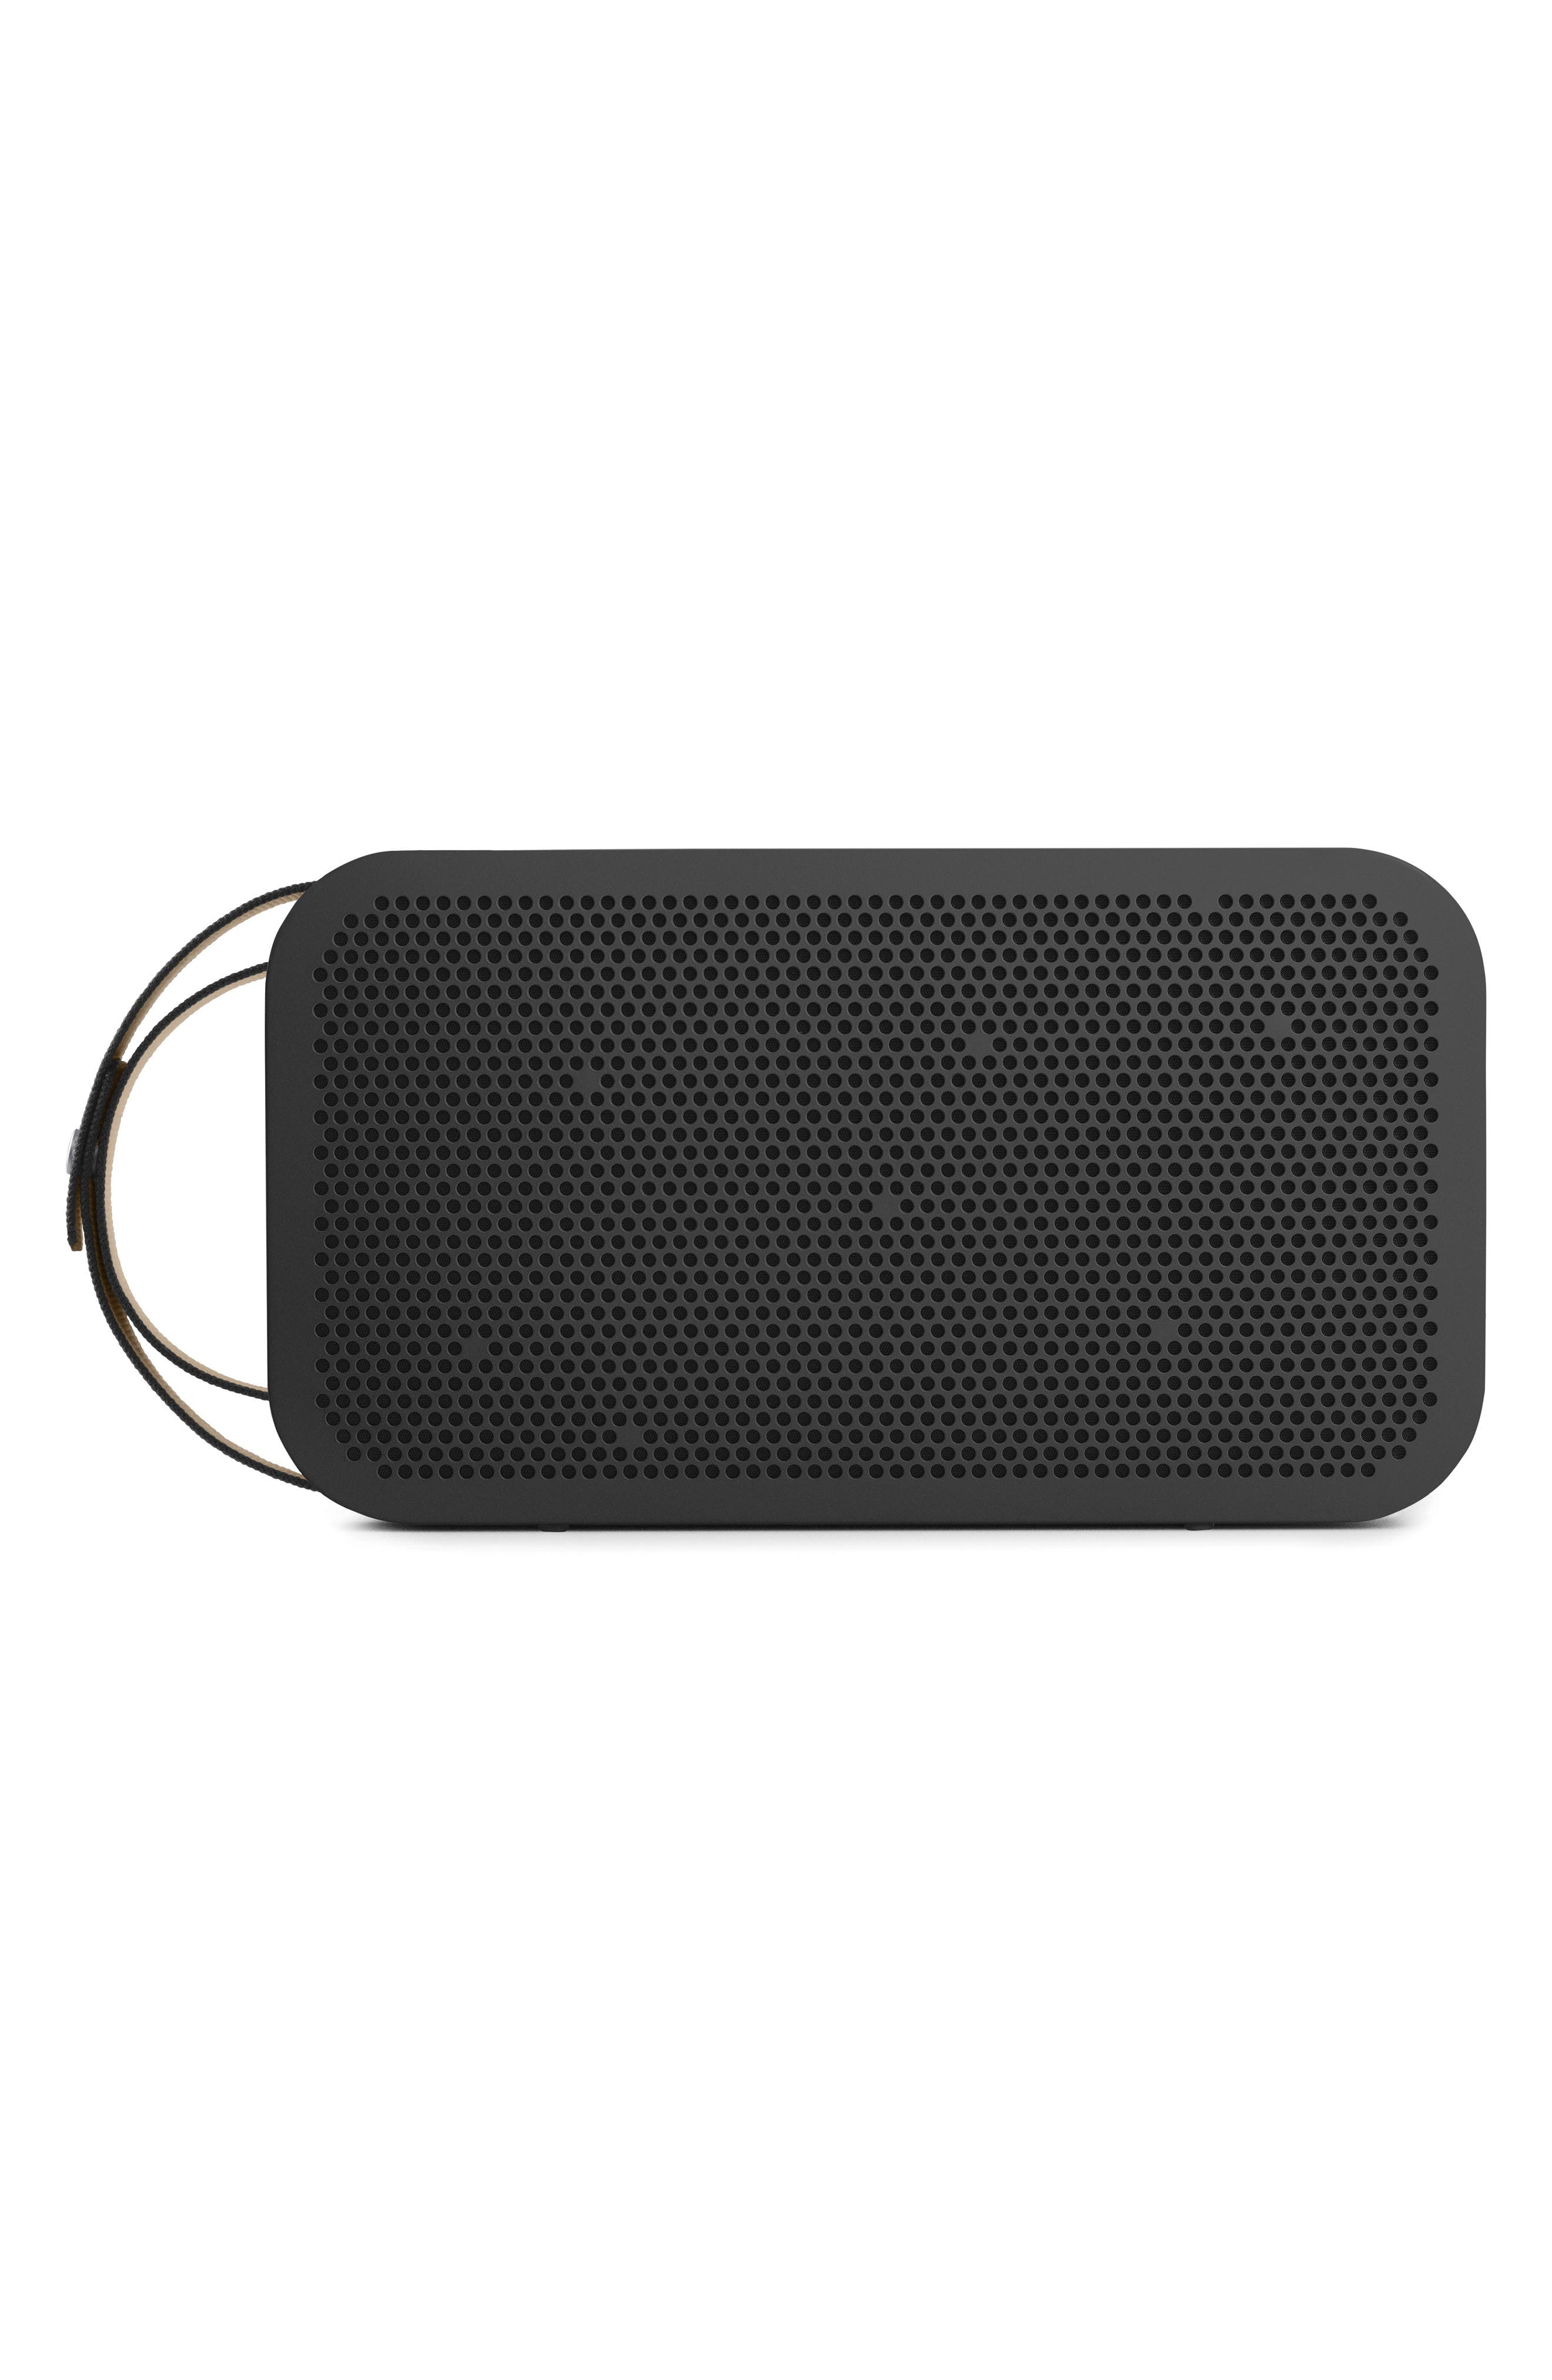 A2 Active Bluetooth Speaker,                             Main thumbnail 1, color,                             021